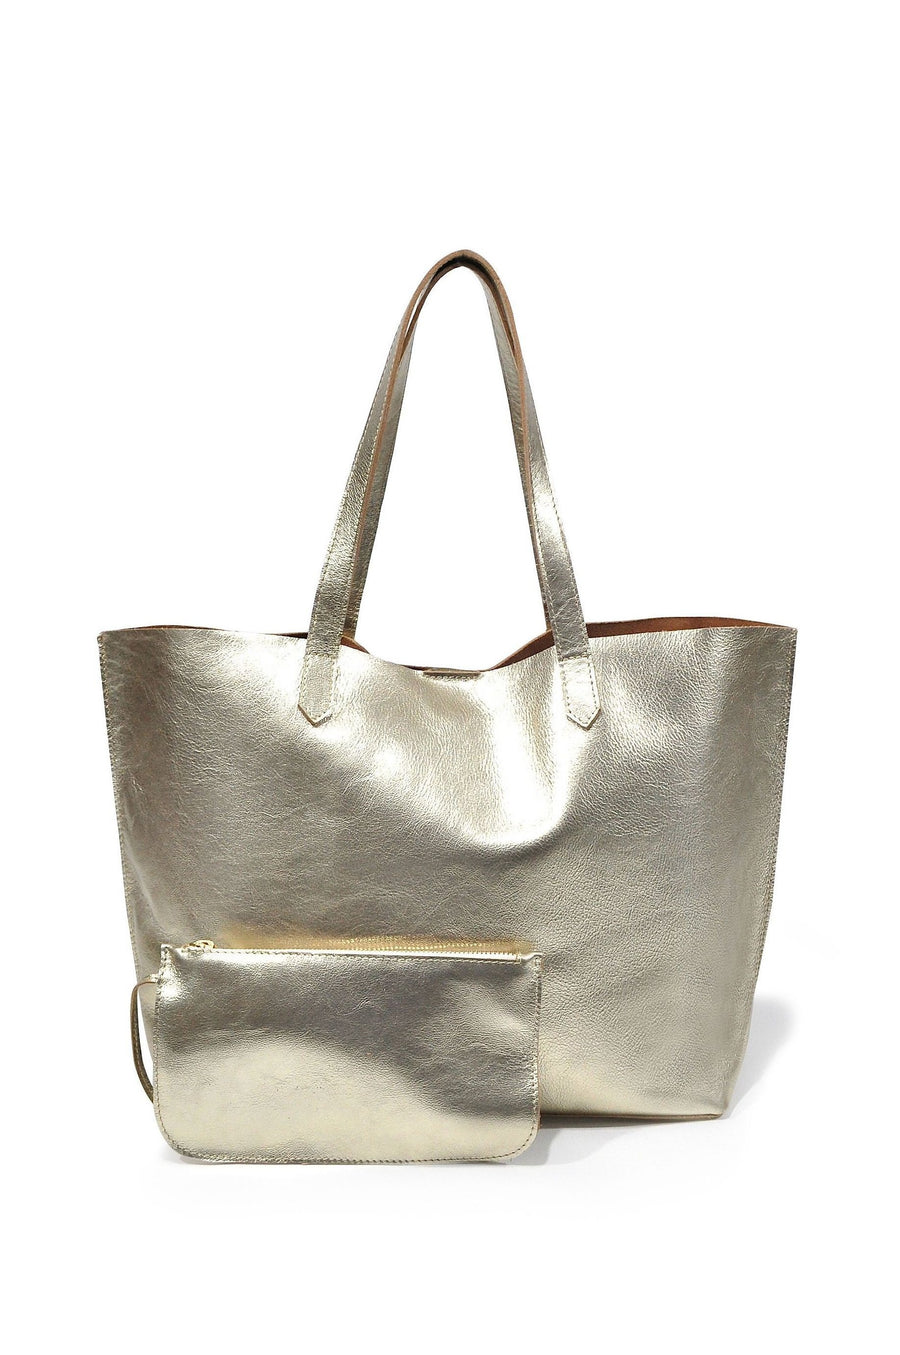 Edge Leather Tote Gold - Positive Elements